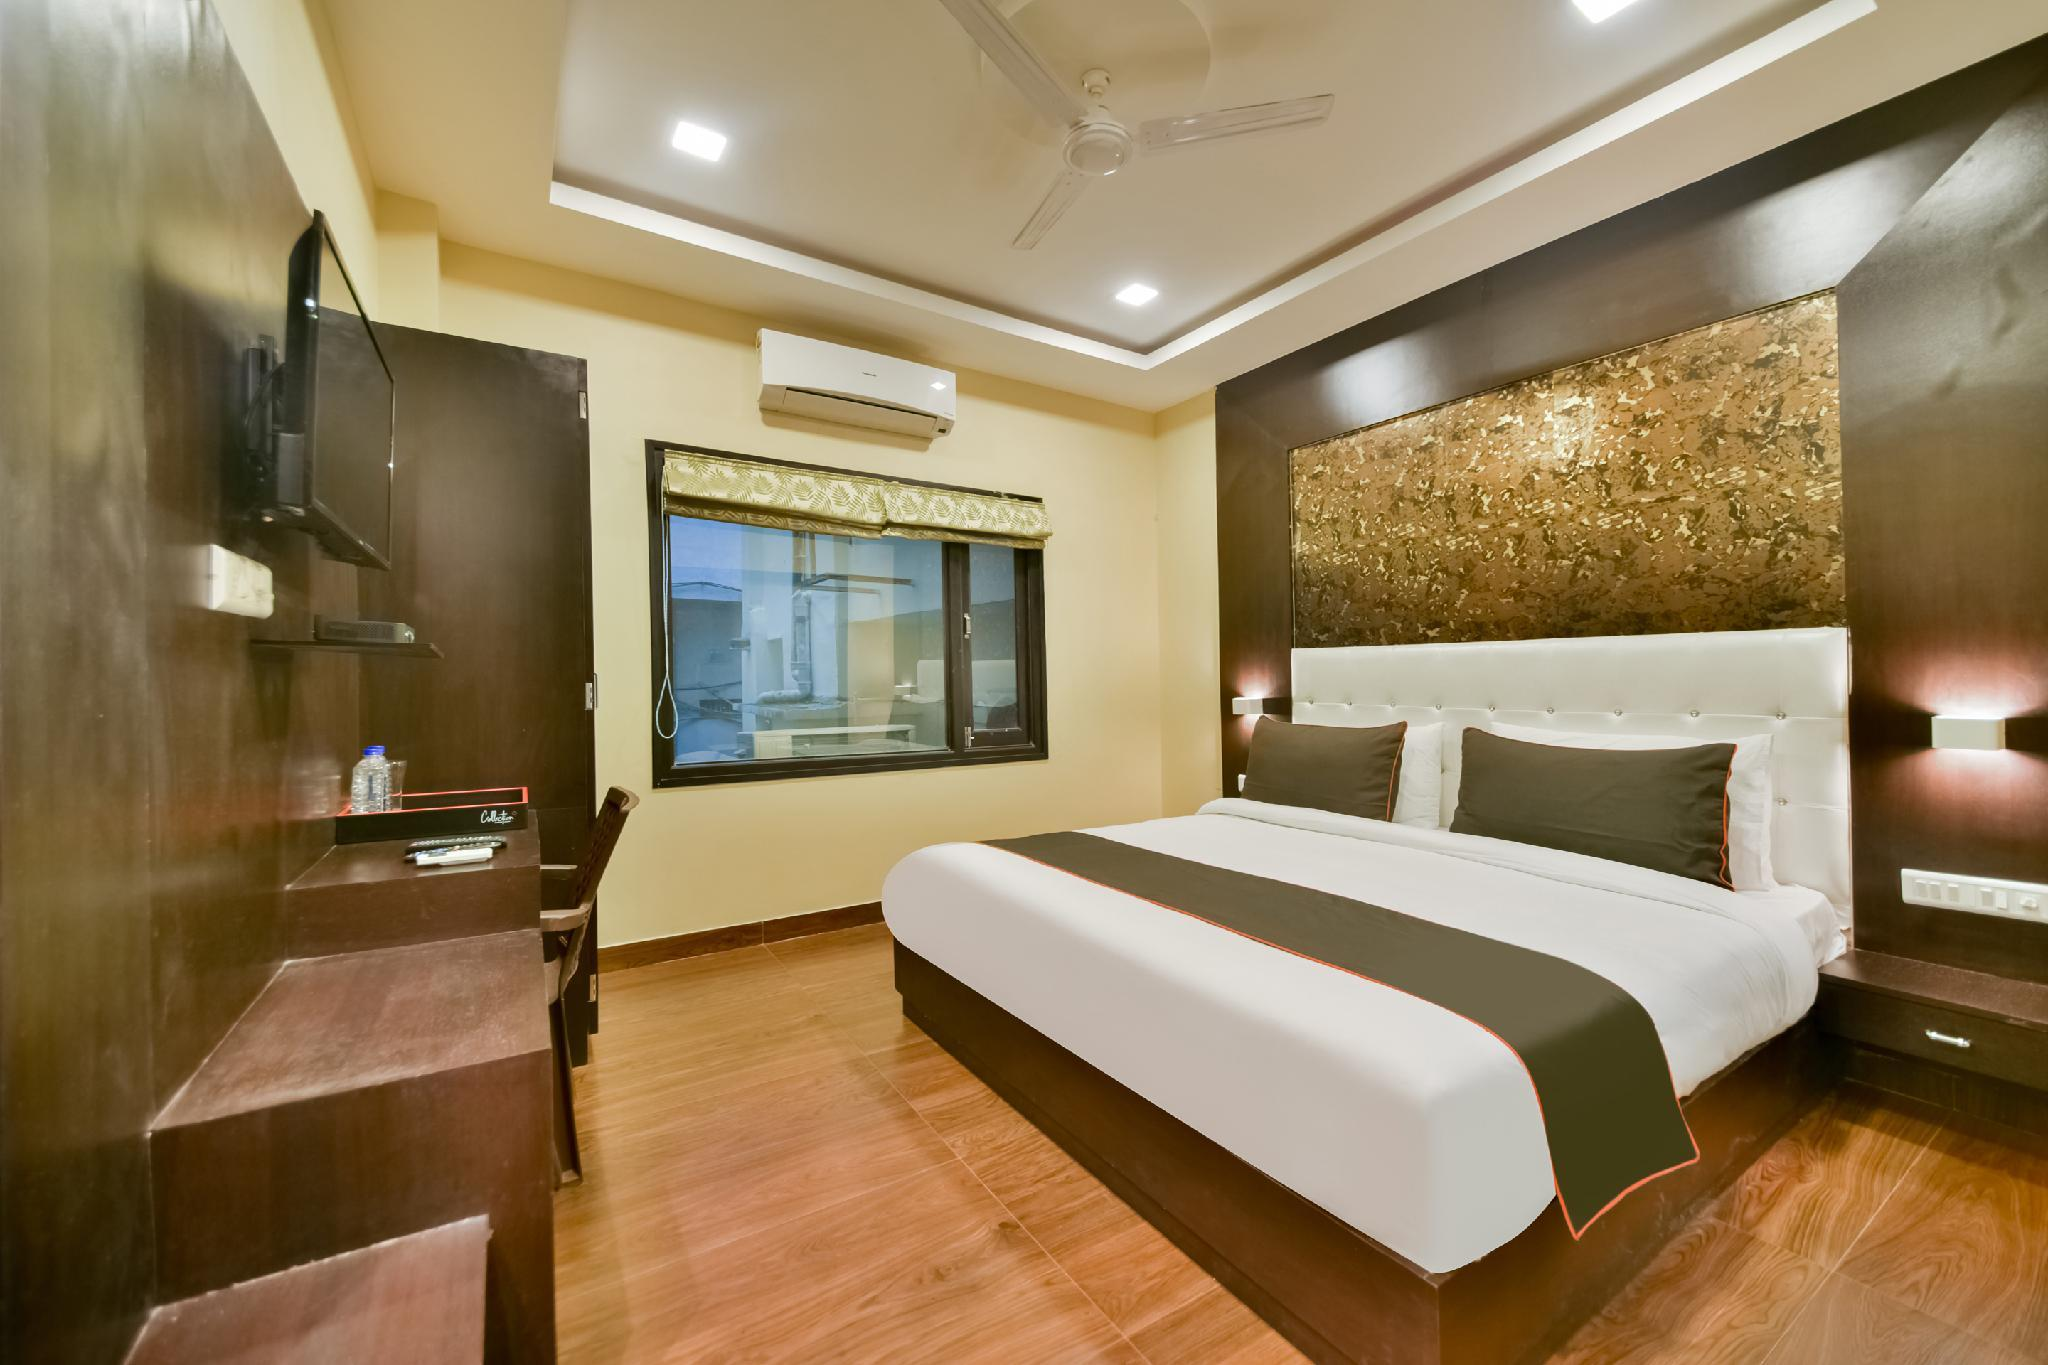 Collection O 50220 Hotel Grand Bhagwat Shastri Circle